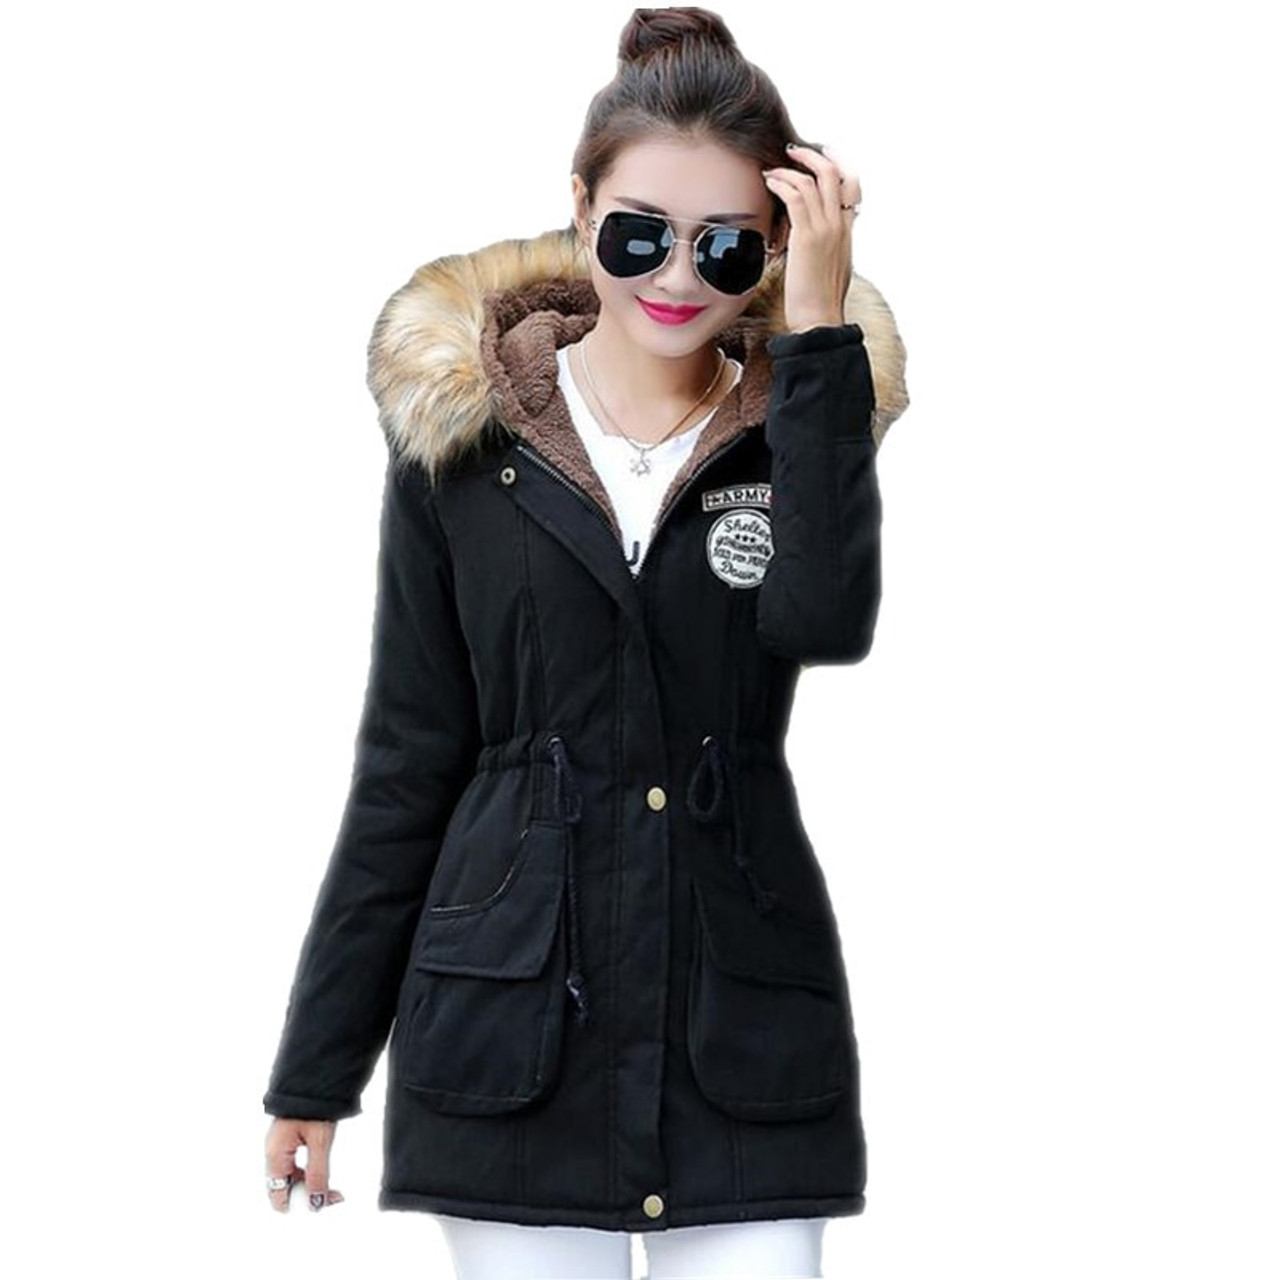 bf2957a63e3 ... New Long Parkas Female Womens Winter Jacket Coat Thick Cotton Warm  Jacket Womens Outwear Parkas Plus ...